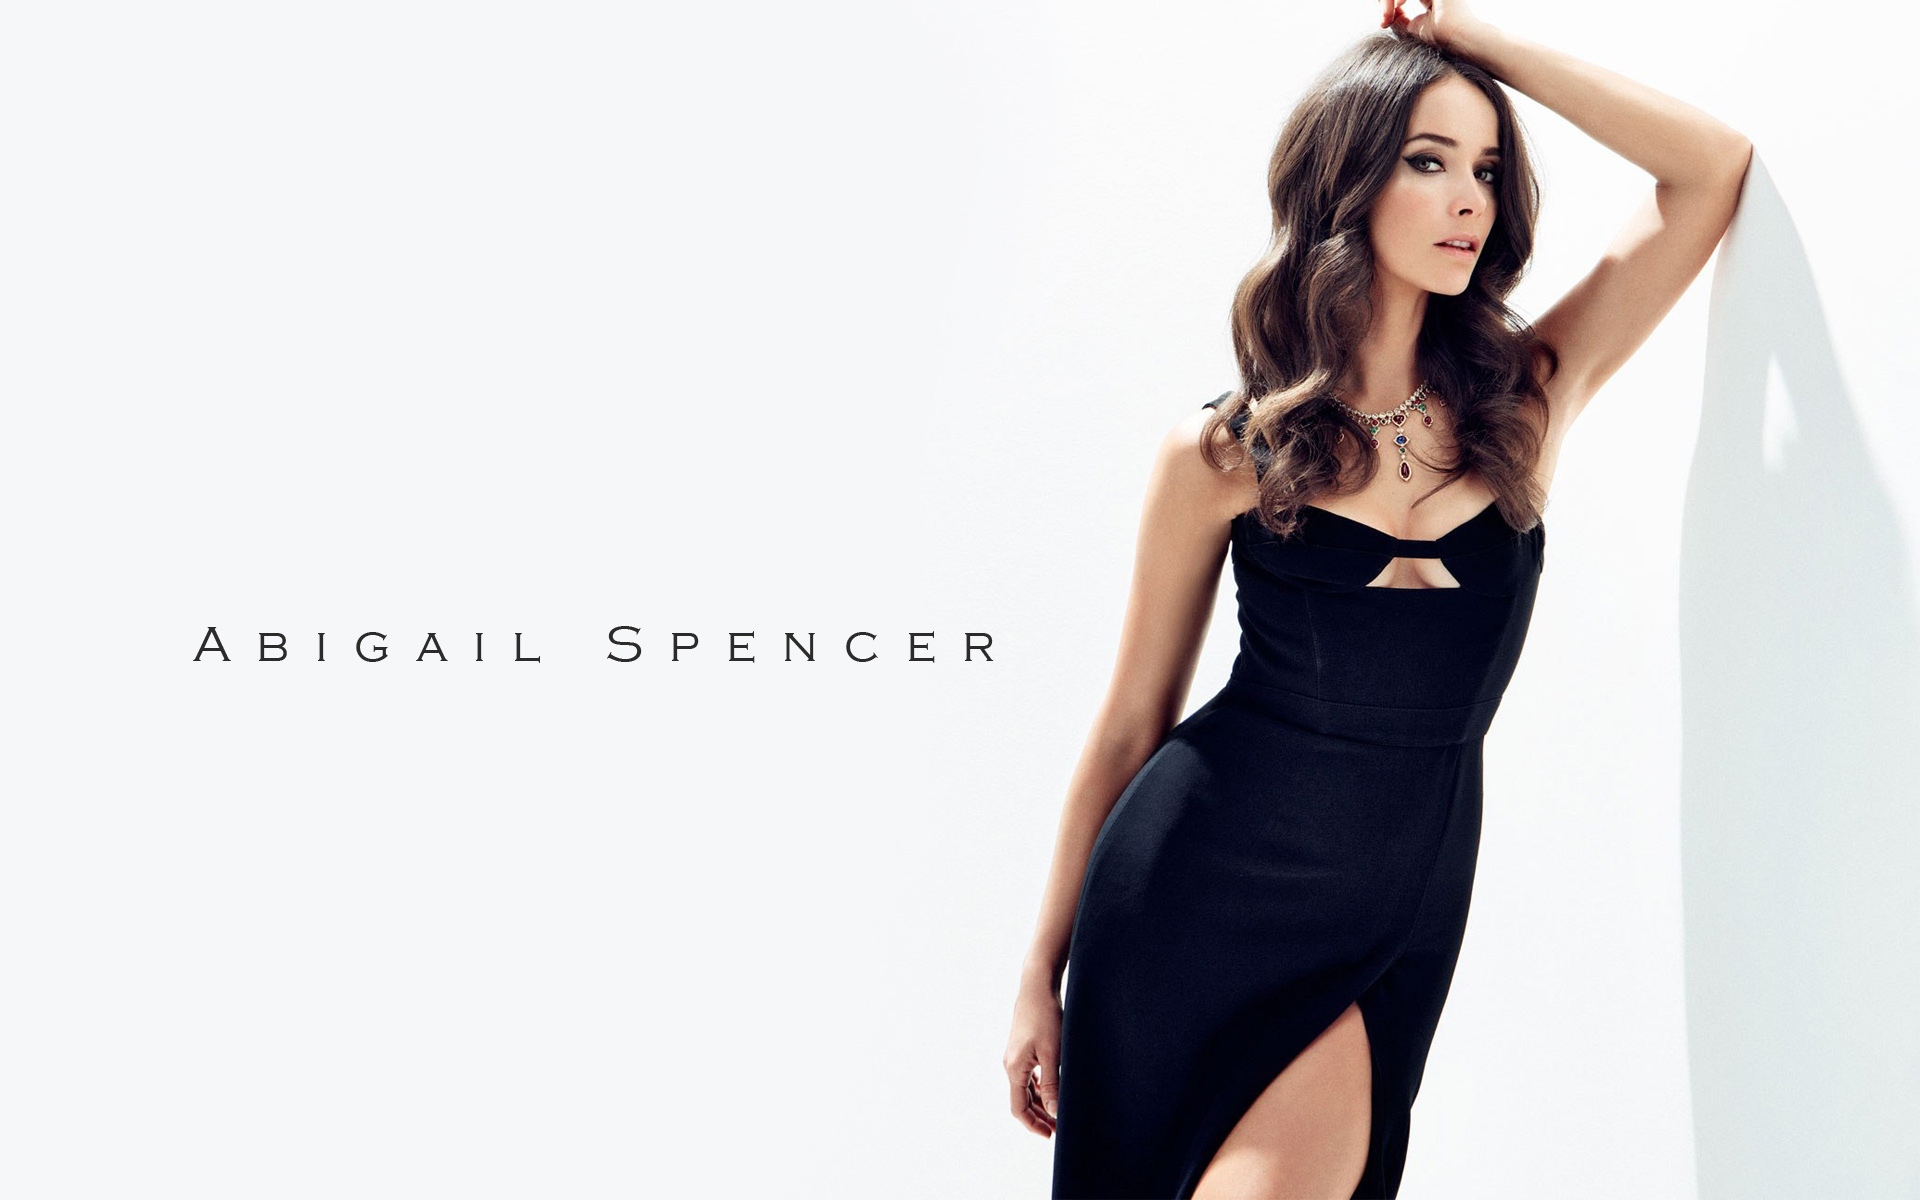 1920x1200 - Abigail Spencer Wallpapers 17